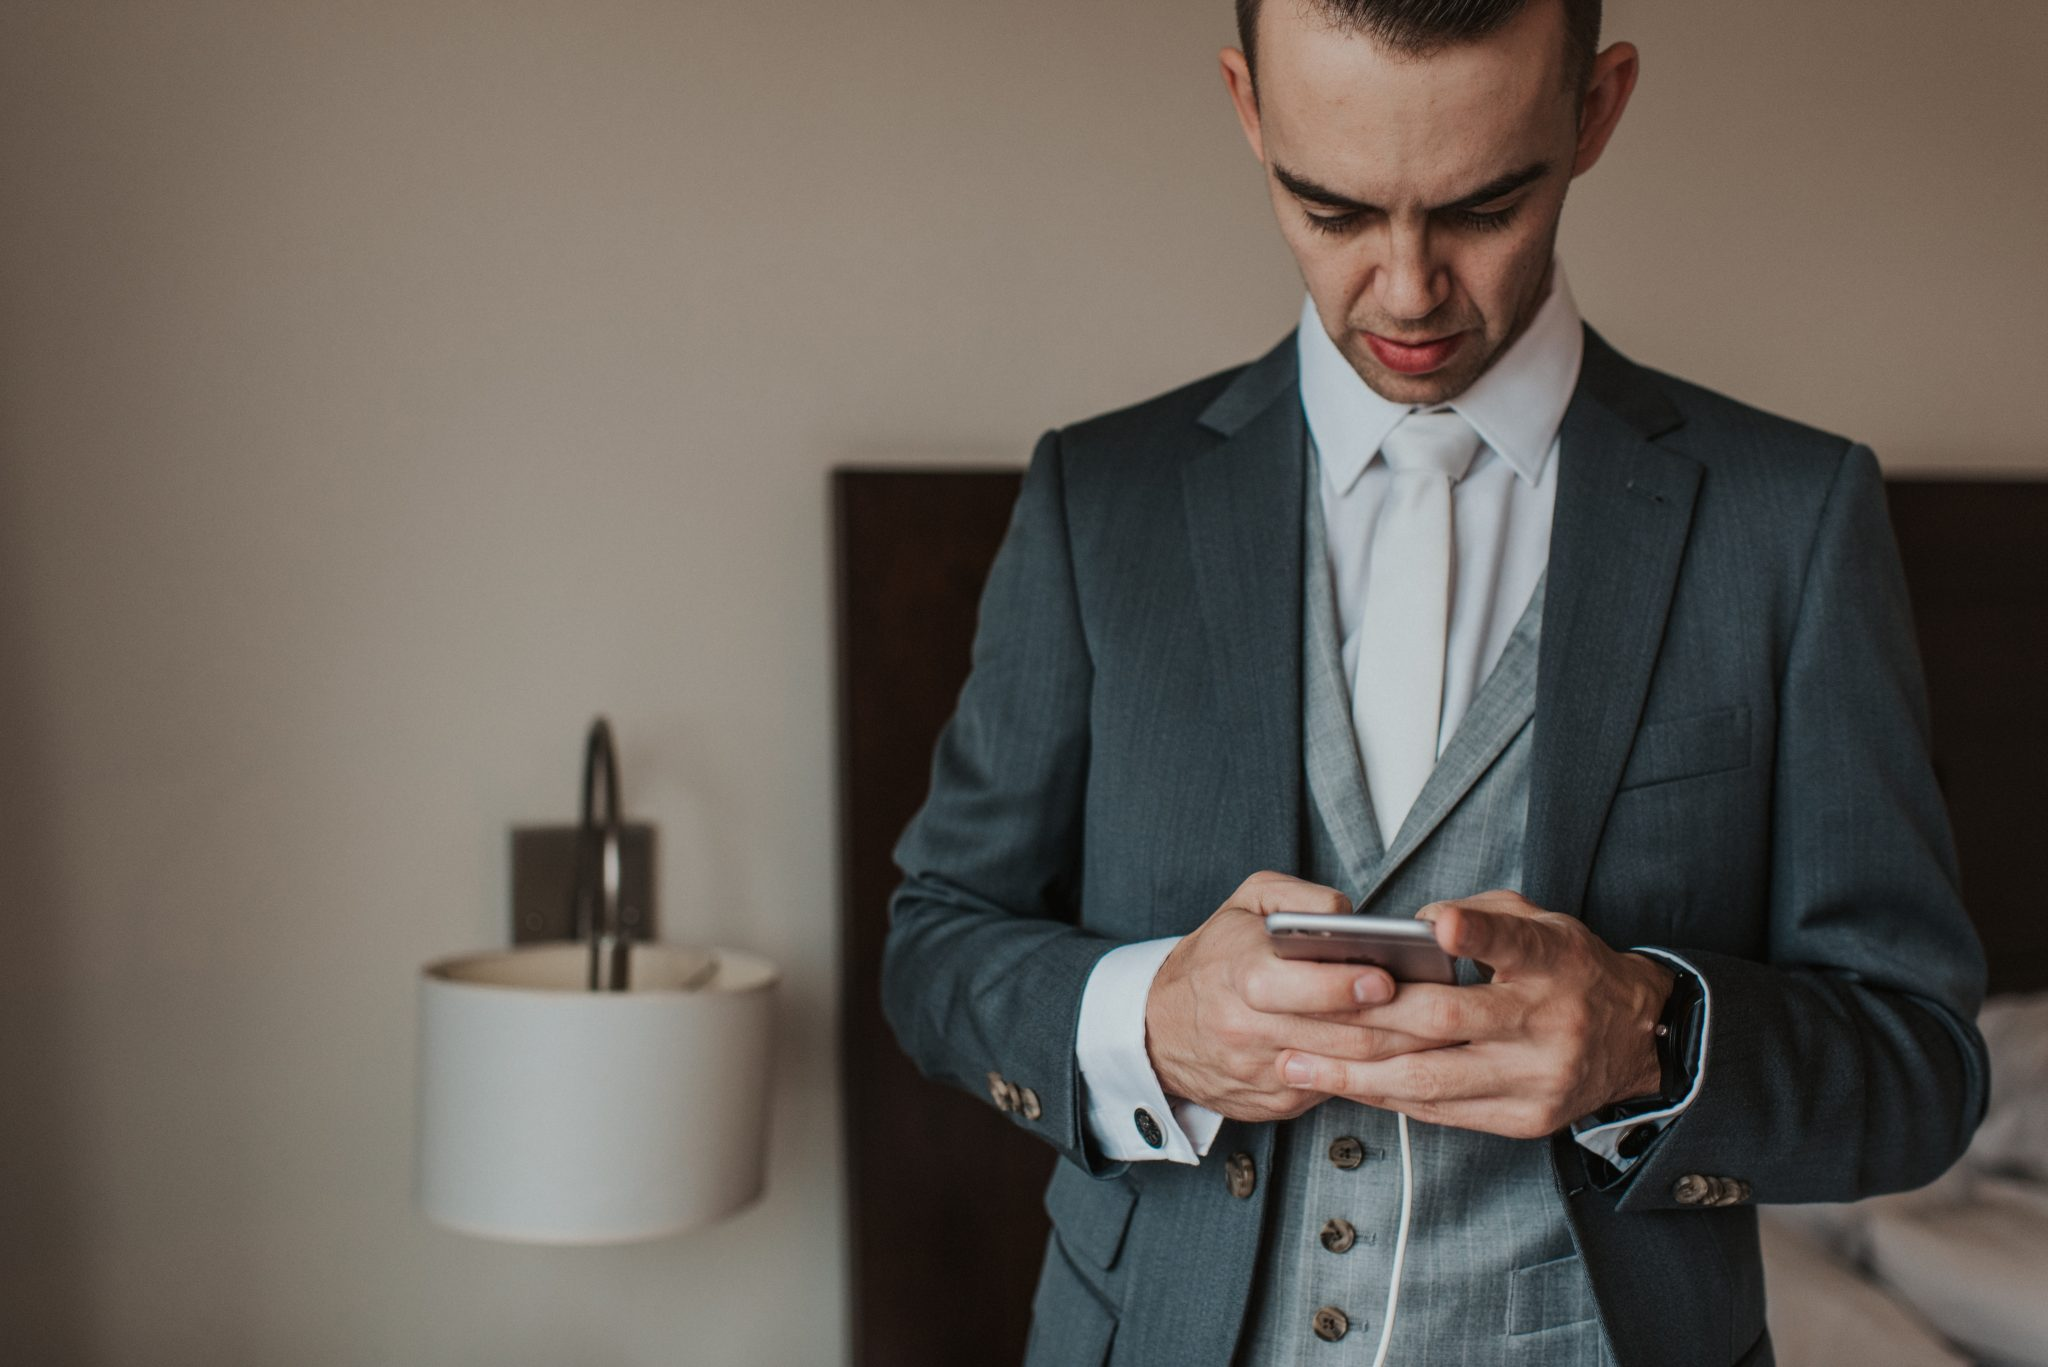 Groom Checking Phone